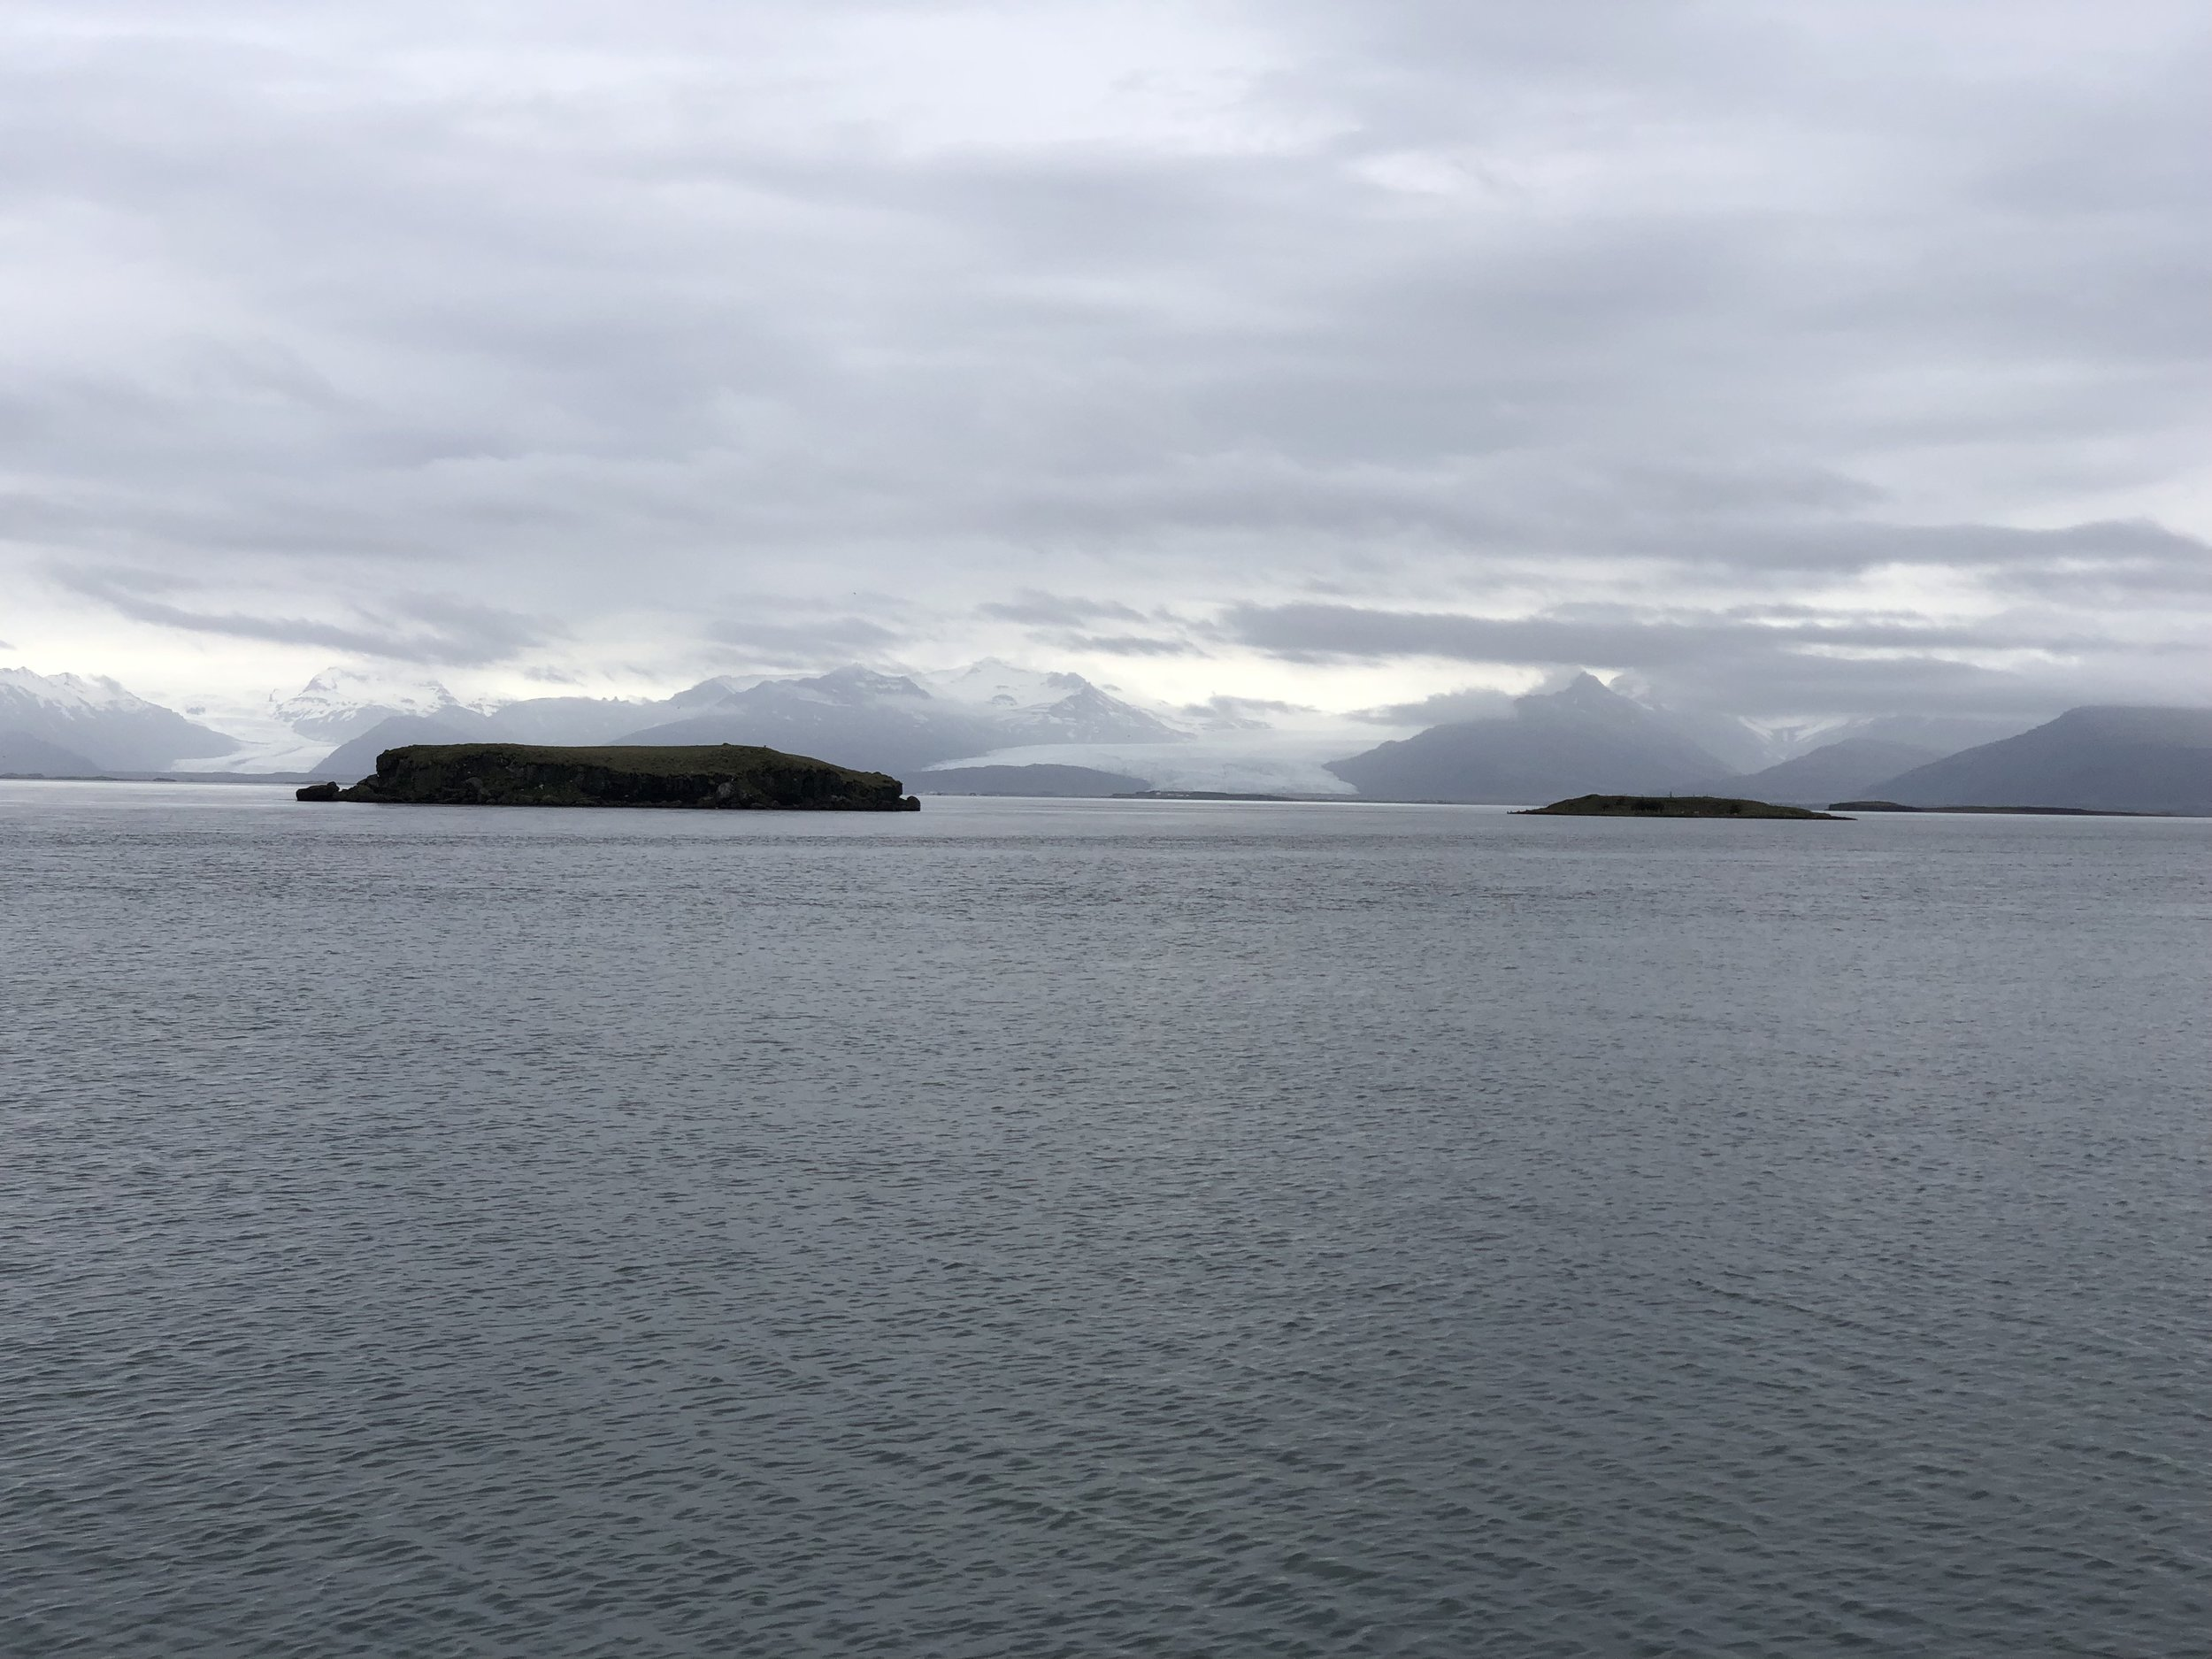 In the distance are two glaciers flowing toward the bay.